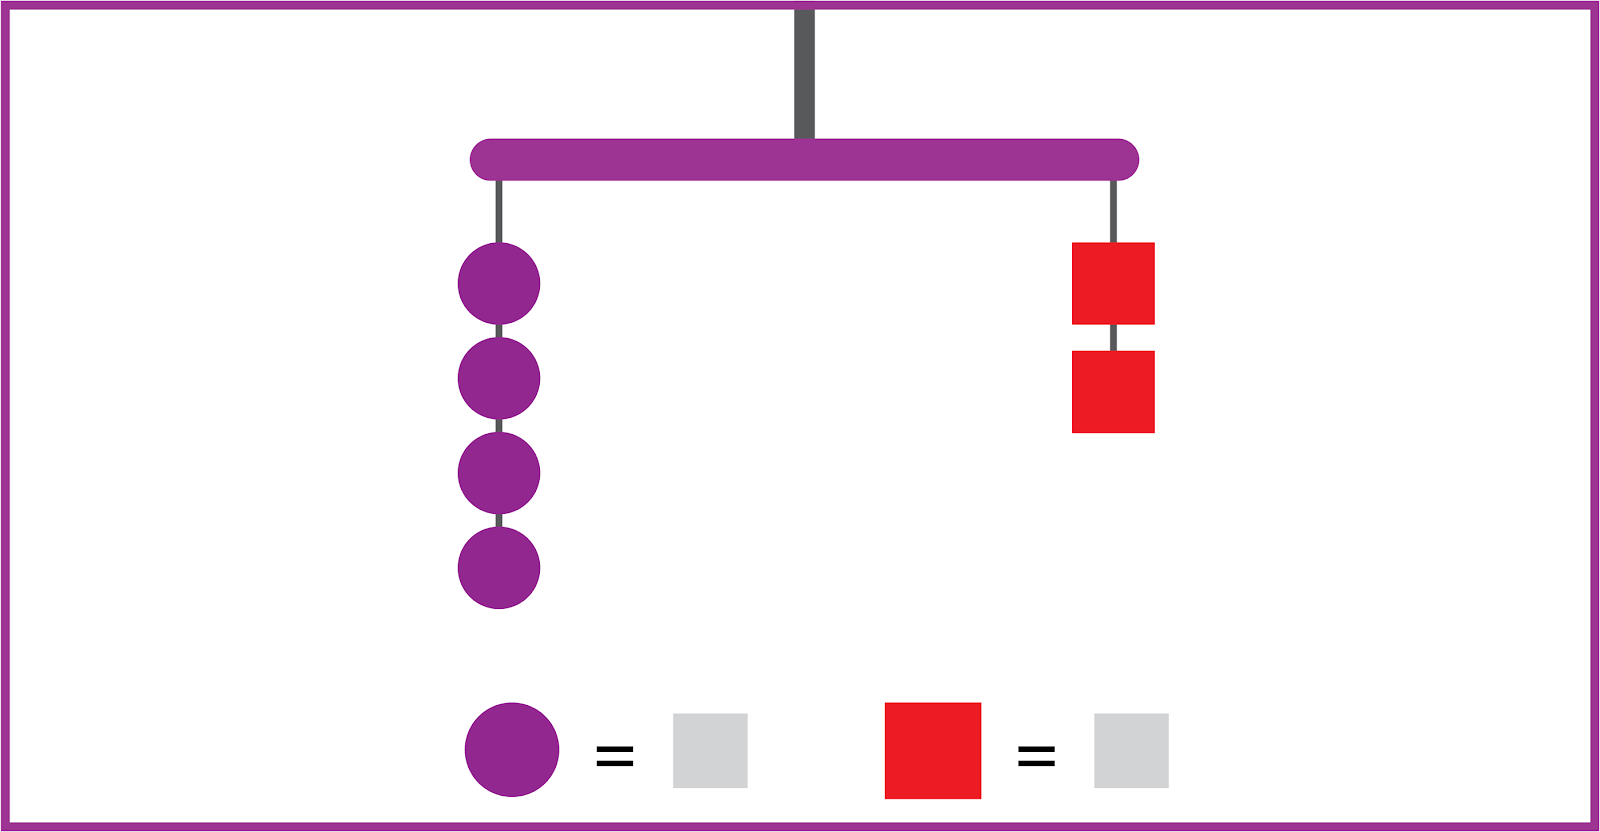 A balanced mobile has 2 strings. The left string has 4 purple circles. The right string has 2 red squares. The shape values are unknown.